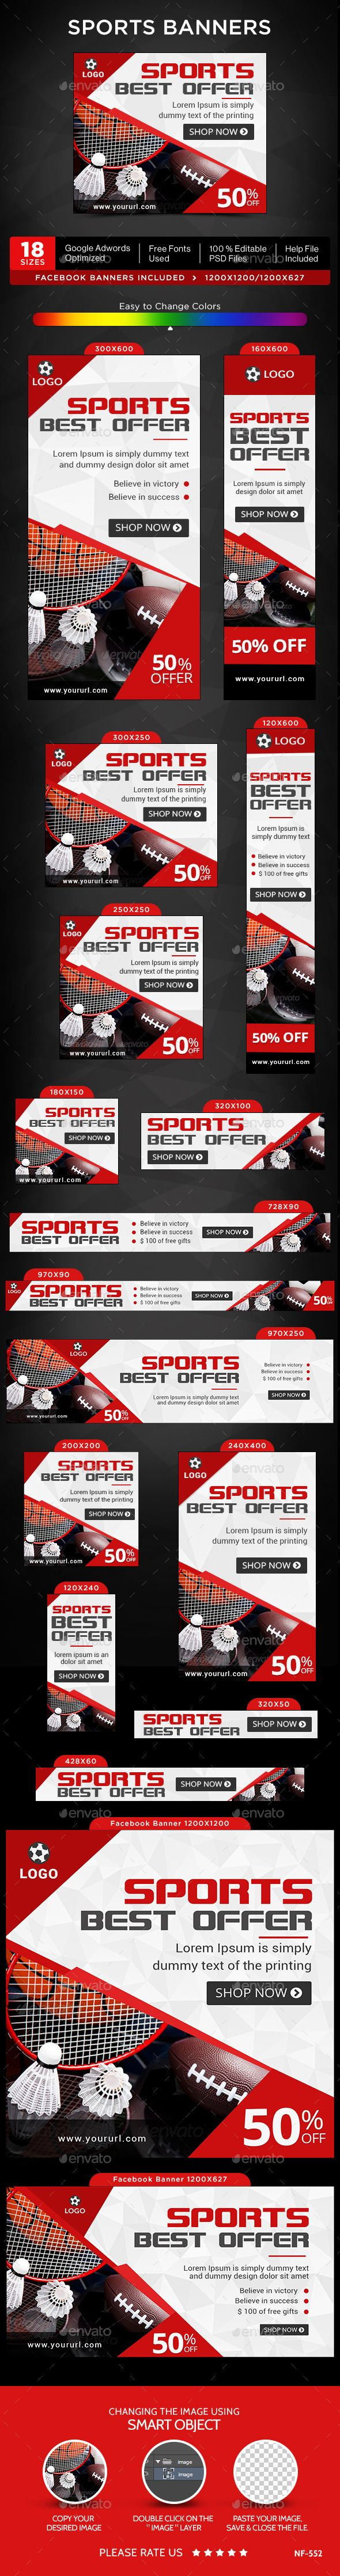 Sports Banners - PSD Template • Only available here ➝ http://graphicriver.net/item/sports-banners/12377757?ref=pxcr